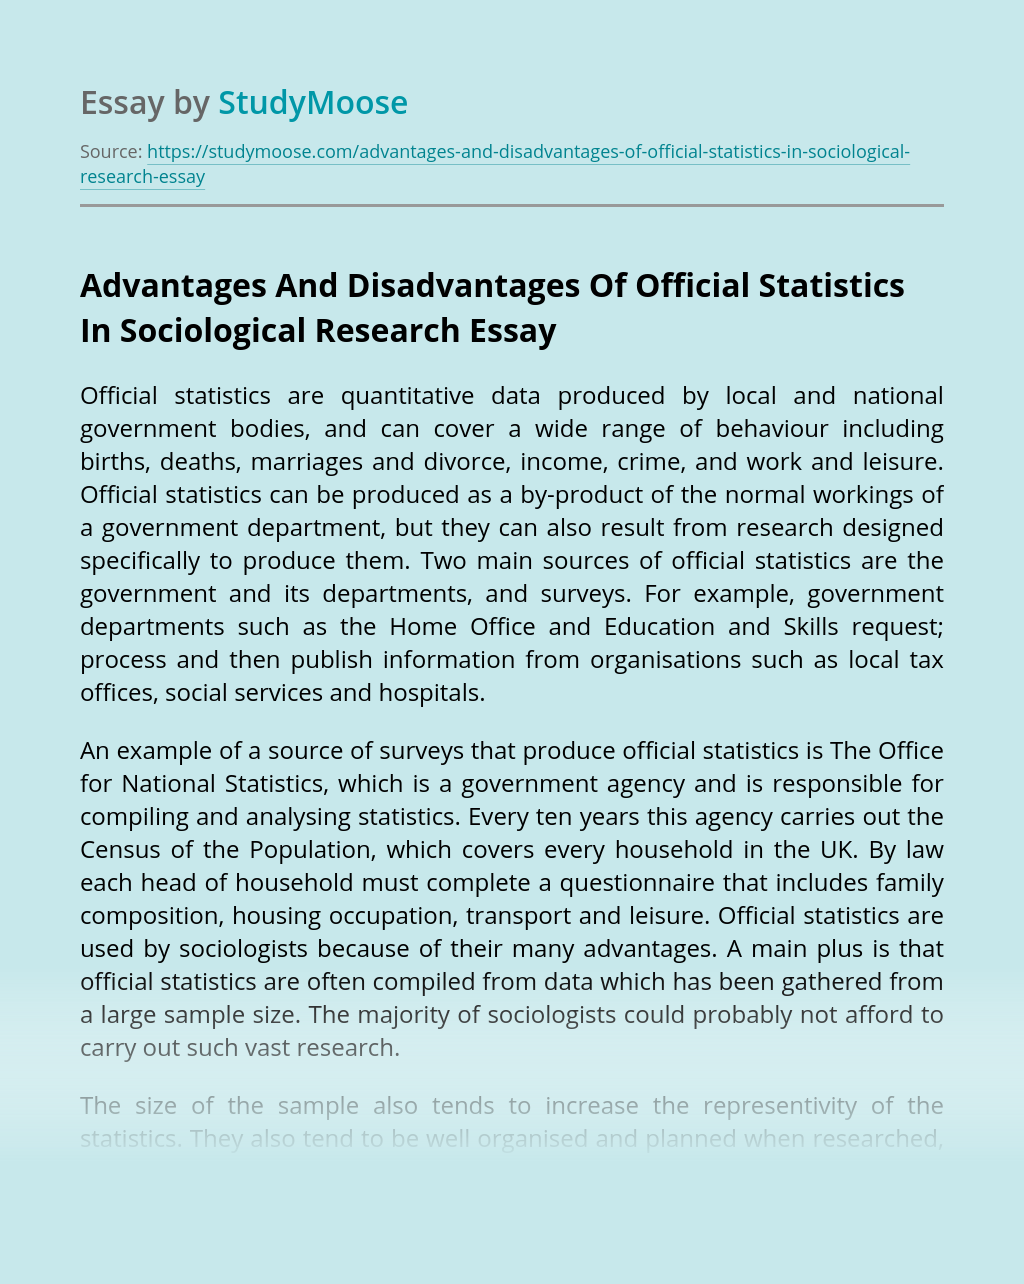 Advantages And Disadvantages Of Official Statistics In Sociological Research